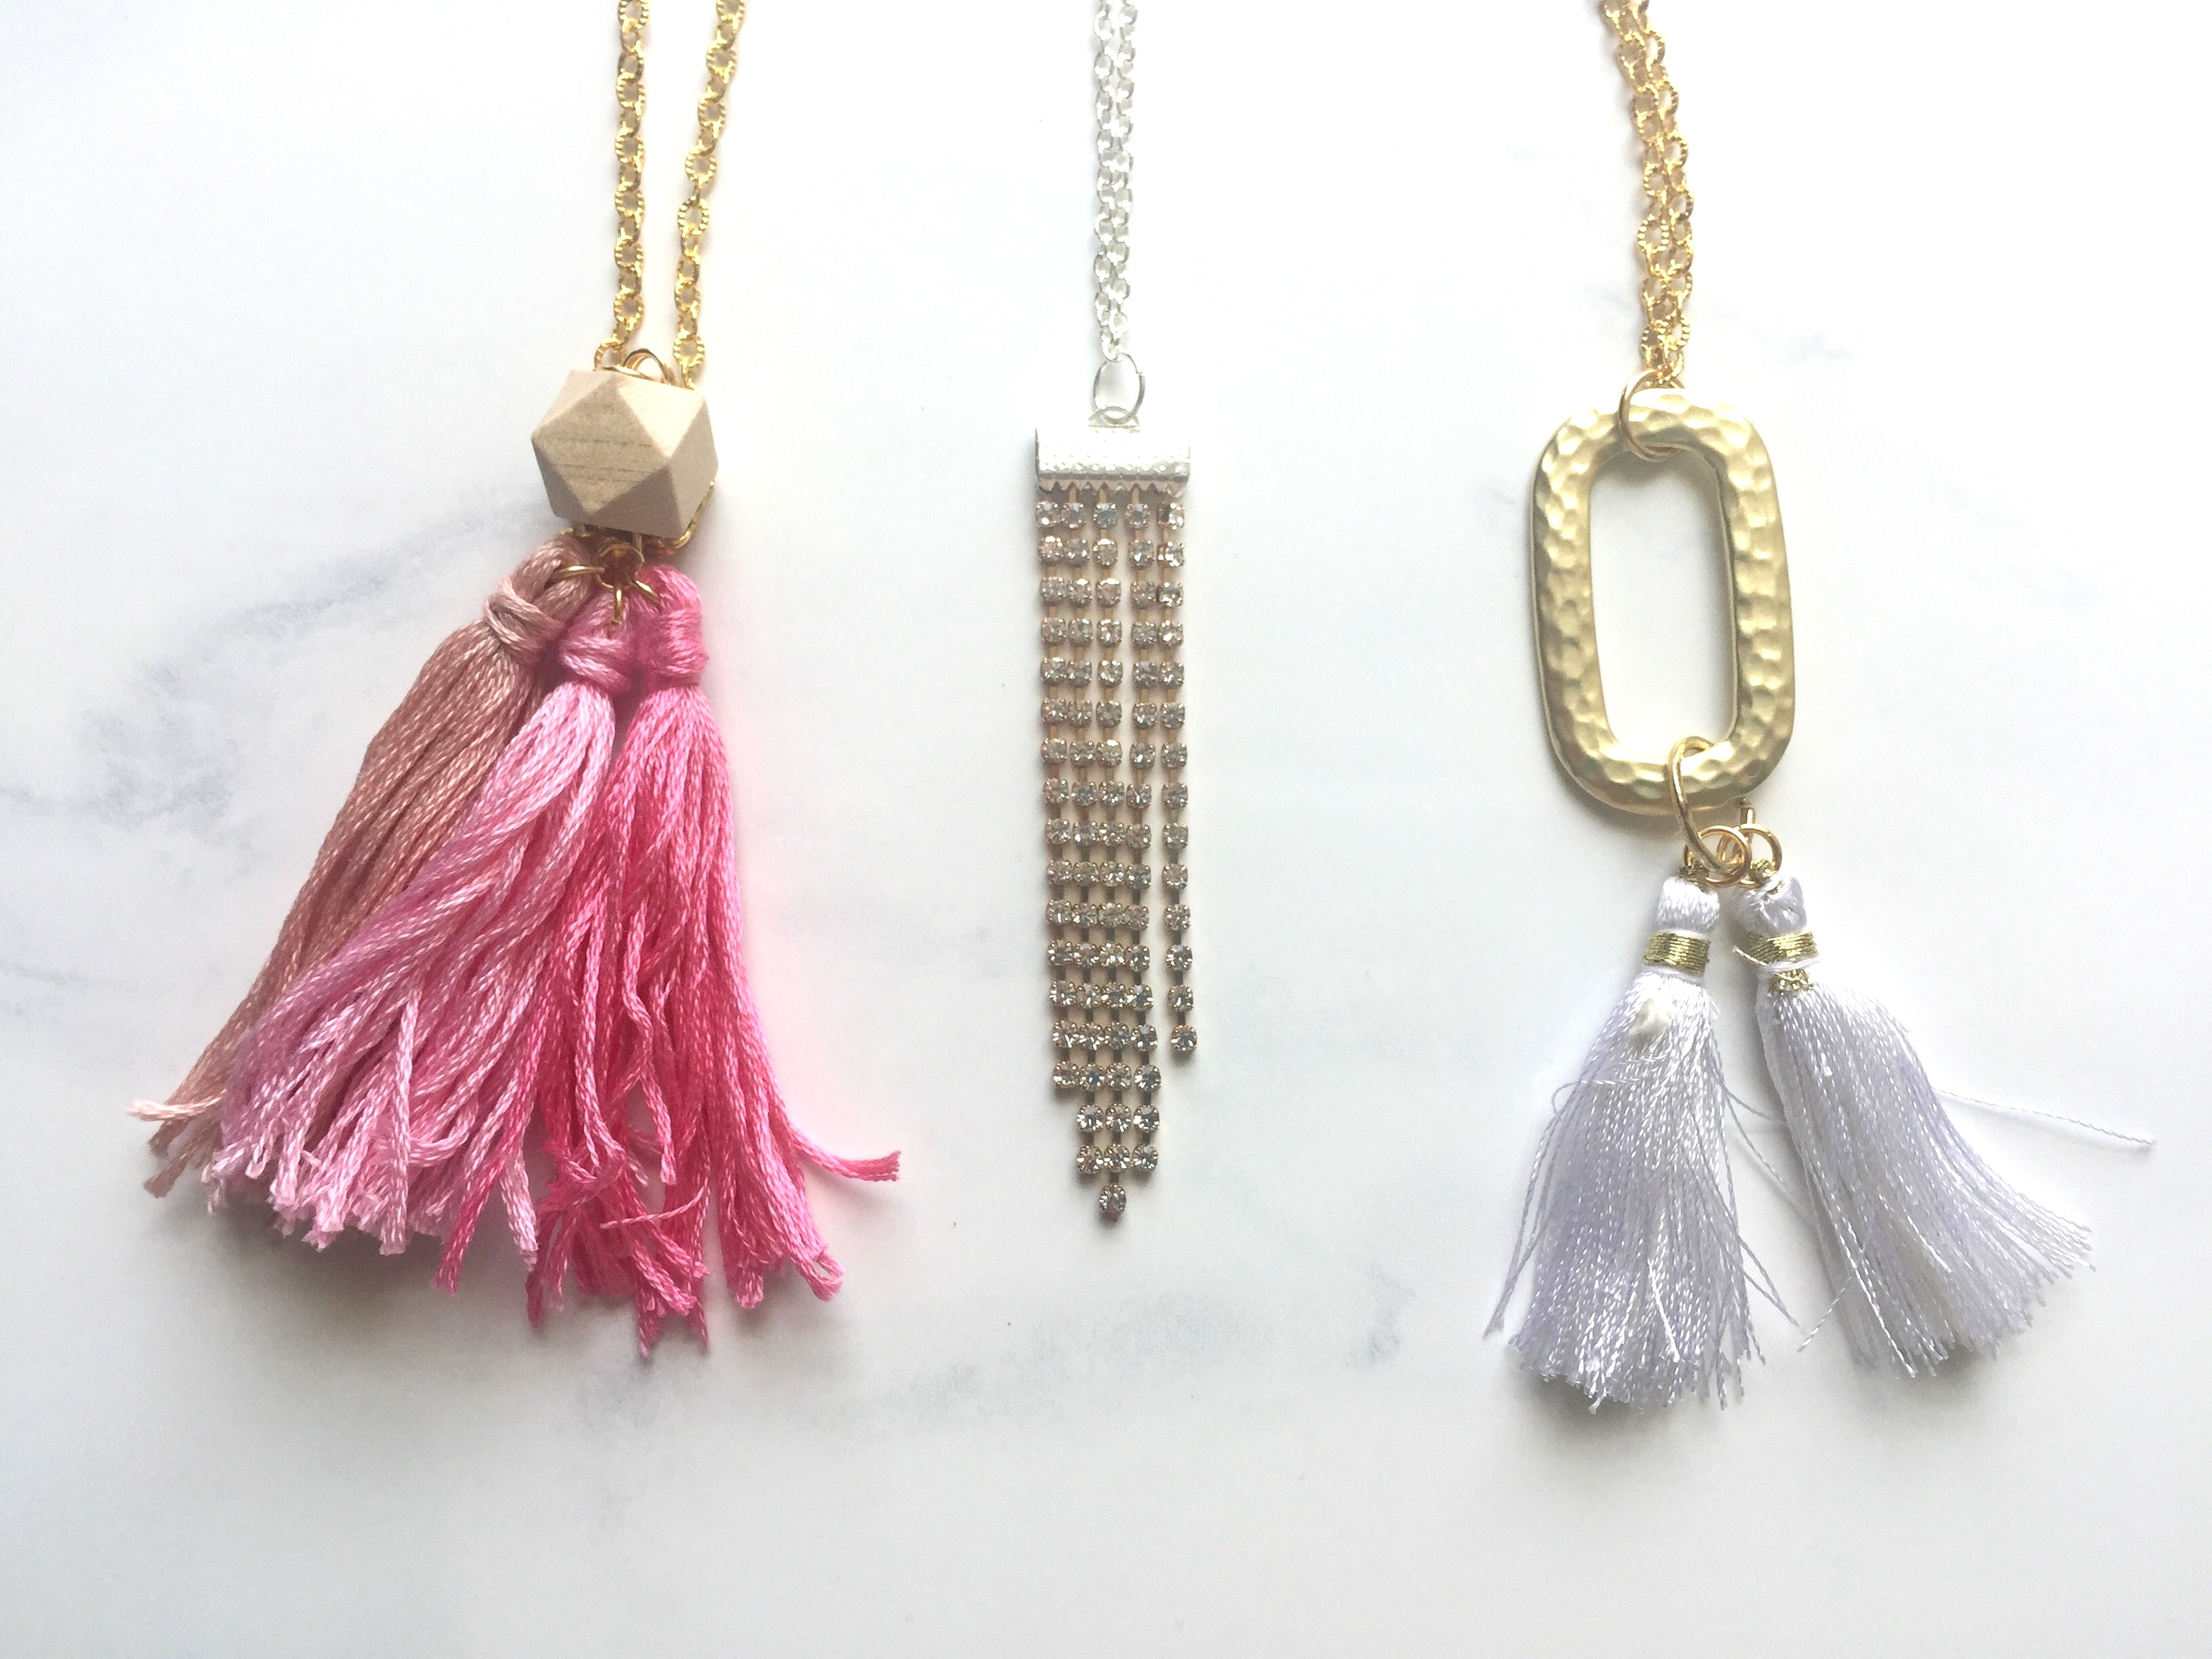 holst necklaces silver necklace long shop tassel lee